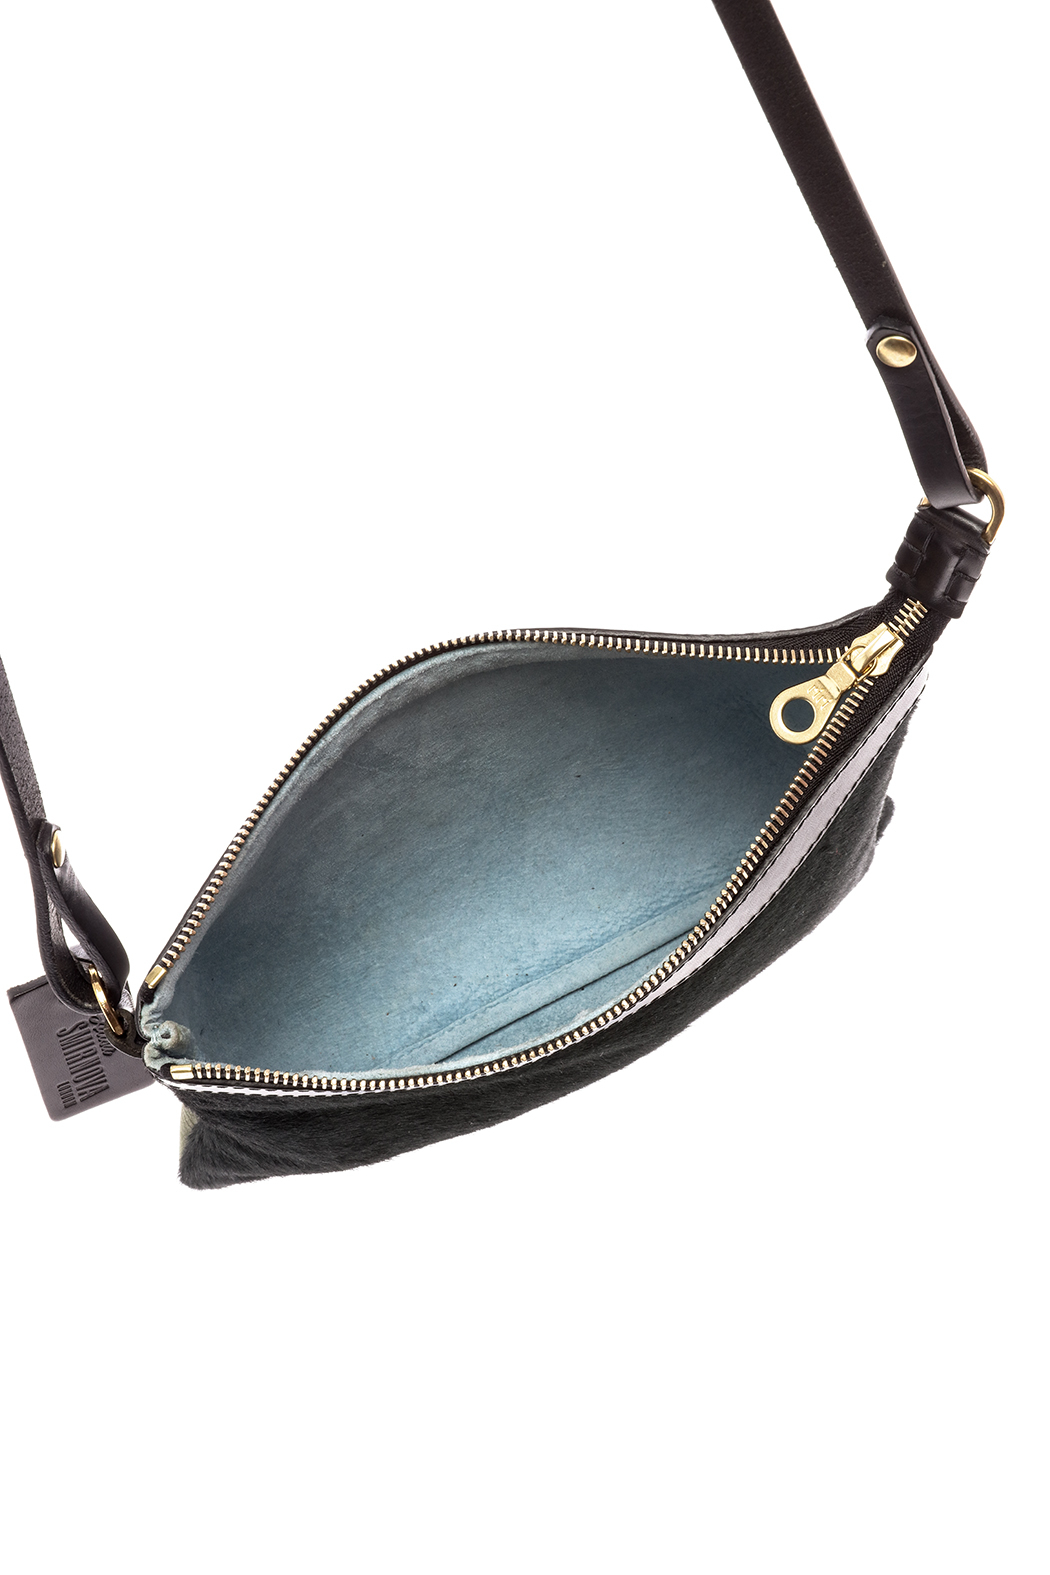 Alisa Smirnova Cowhide Leather Sling Bag - Front Full Image